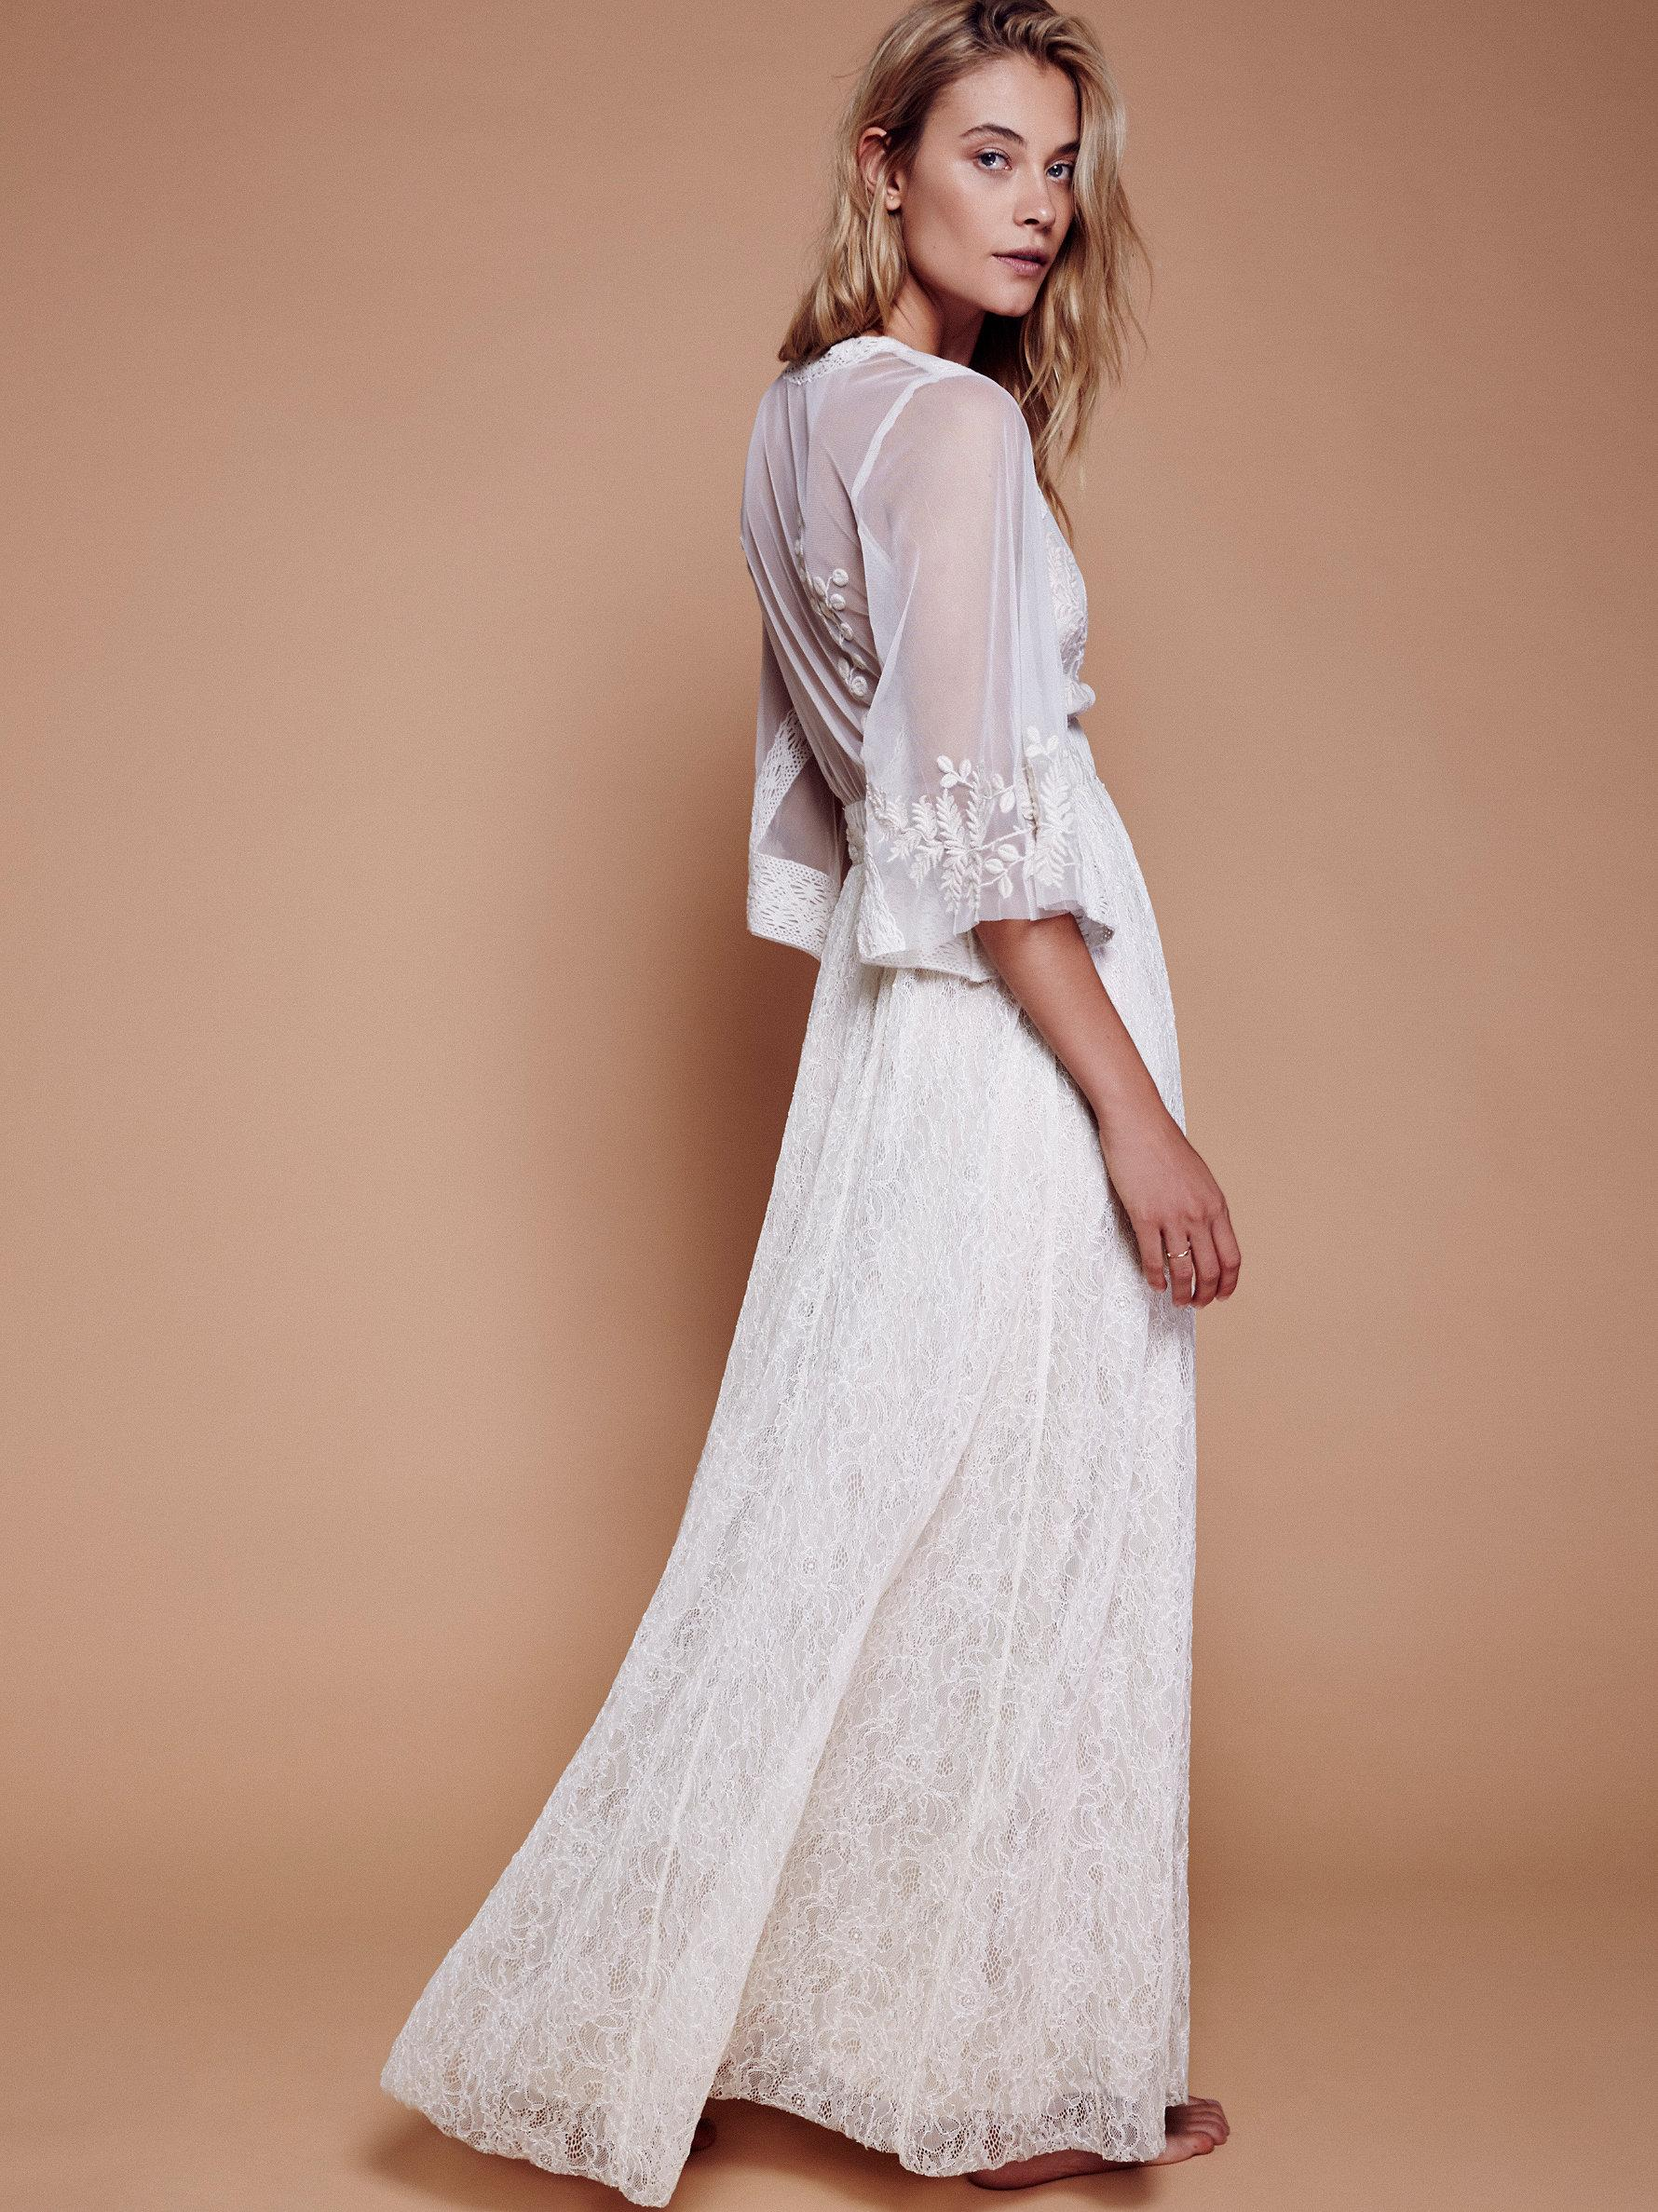 02e88f63bae Free People Eclair Lace Maxi Dress in White - Lyst